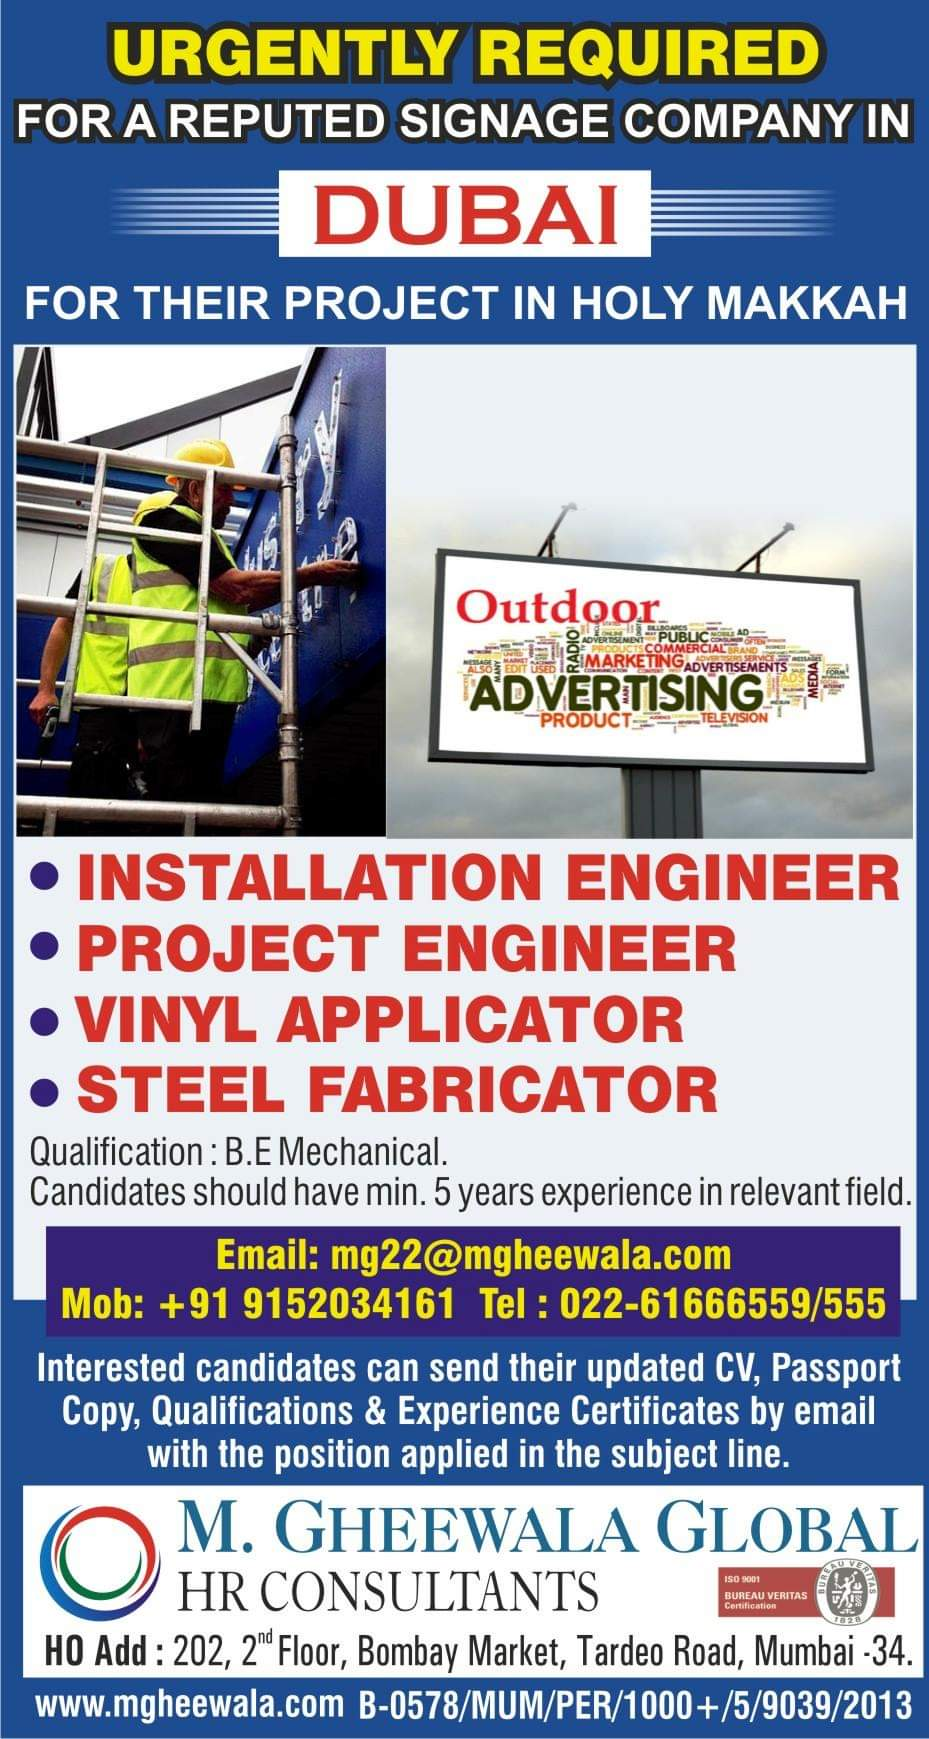 WALK-IN INTERVIEW AT MUMBAI FOR DUBAI SIGNAGE COMPANY PROJECT IN HOLY MAKKAH